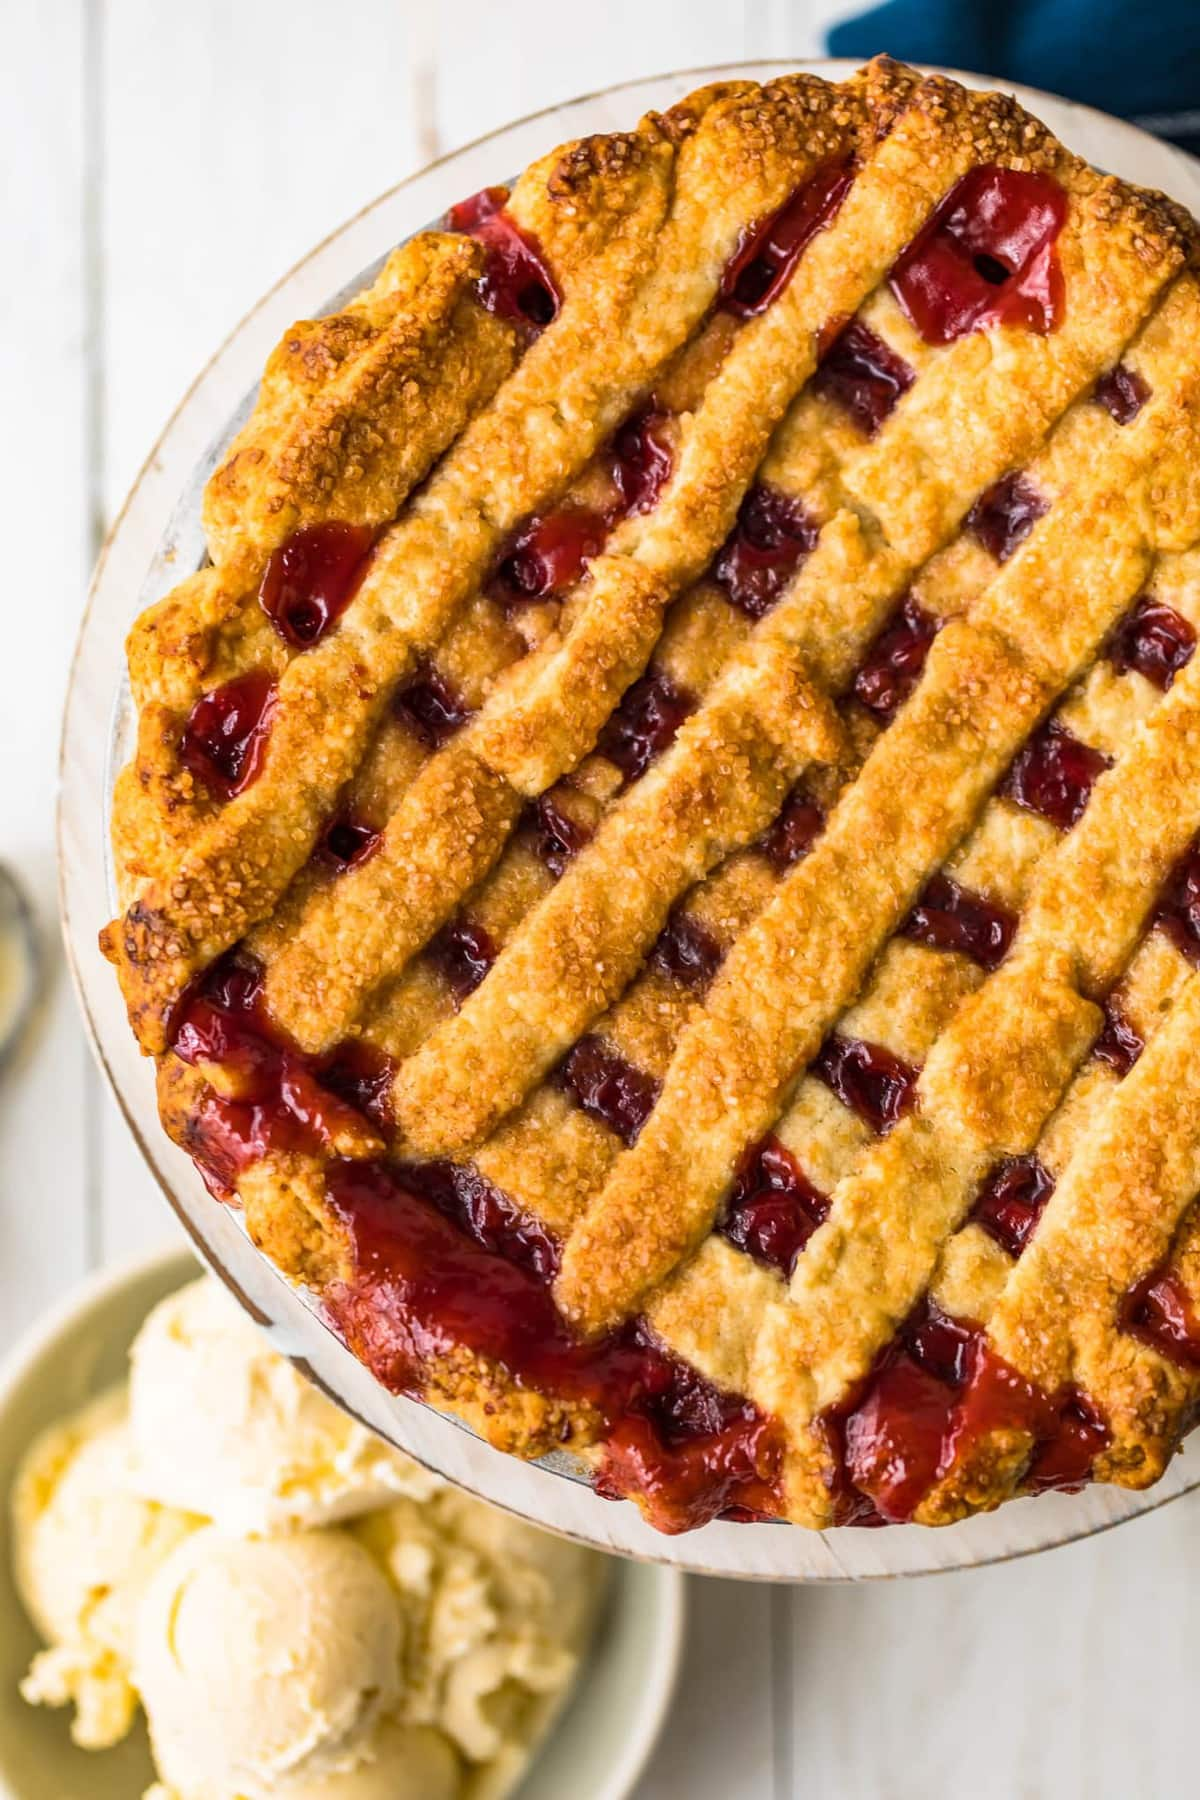 A homemade cherry pie with a lattice top